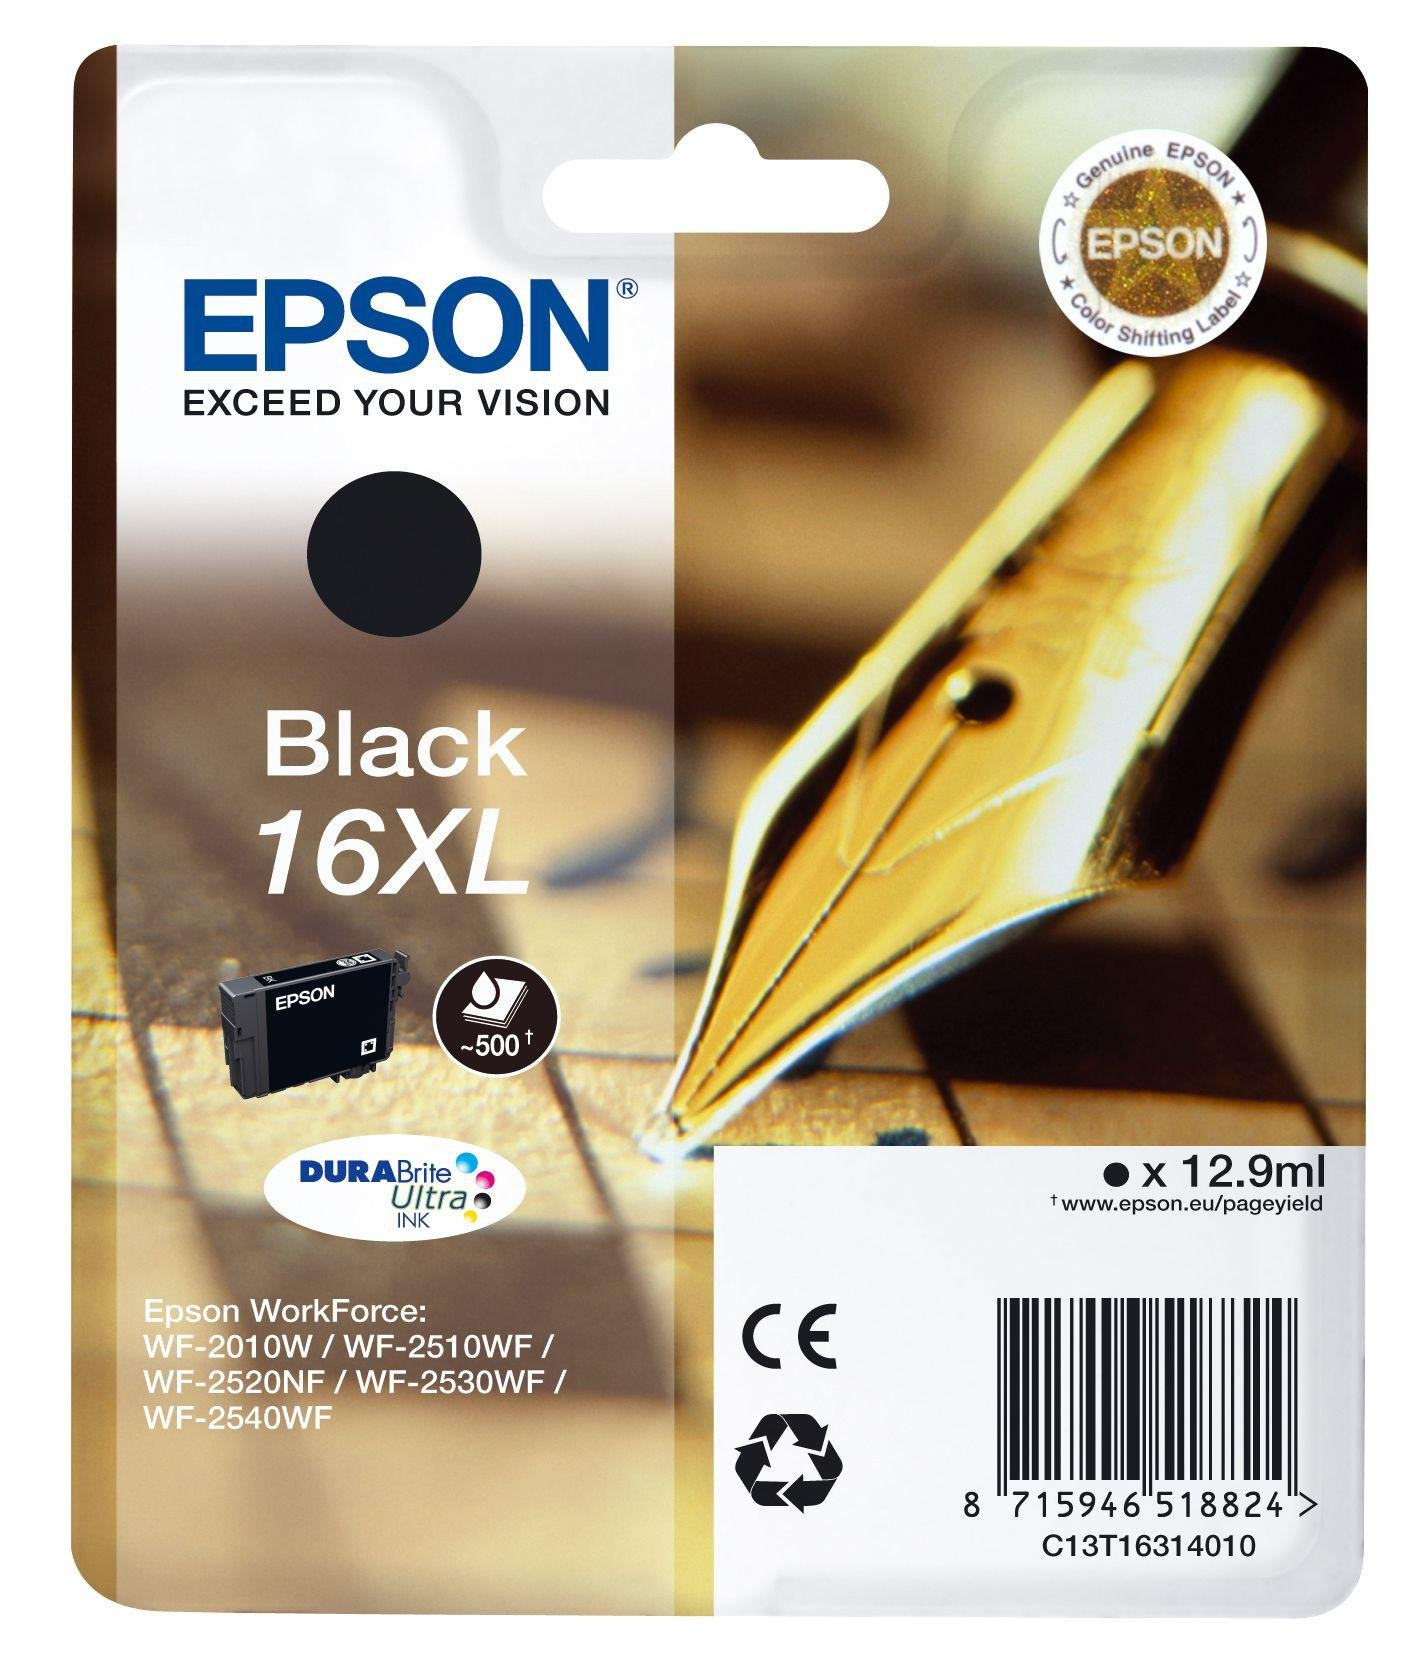 Epson Pen 16XL Black Ink Cartridge from Epson